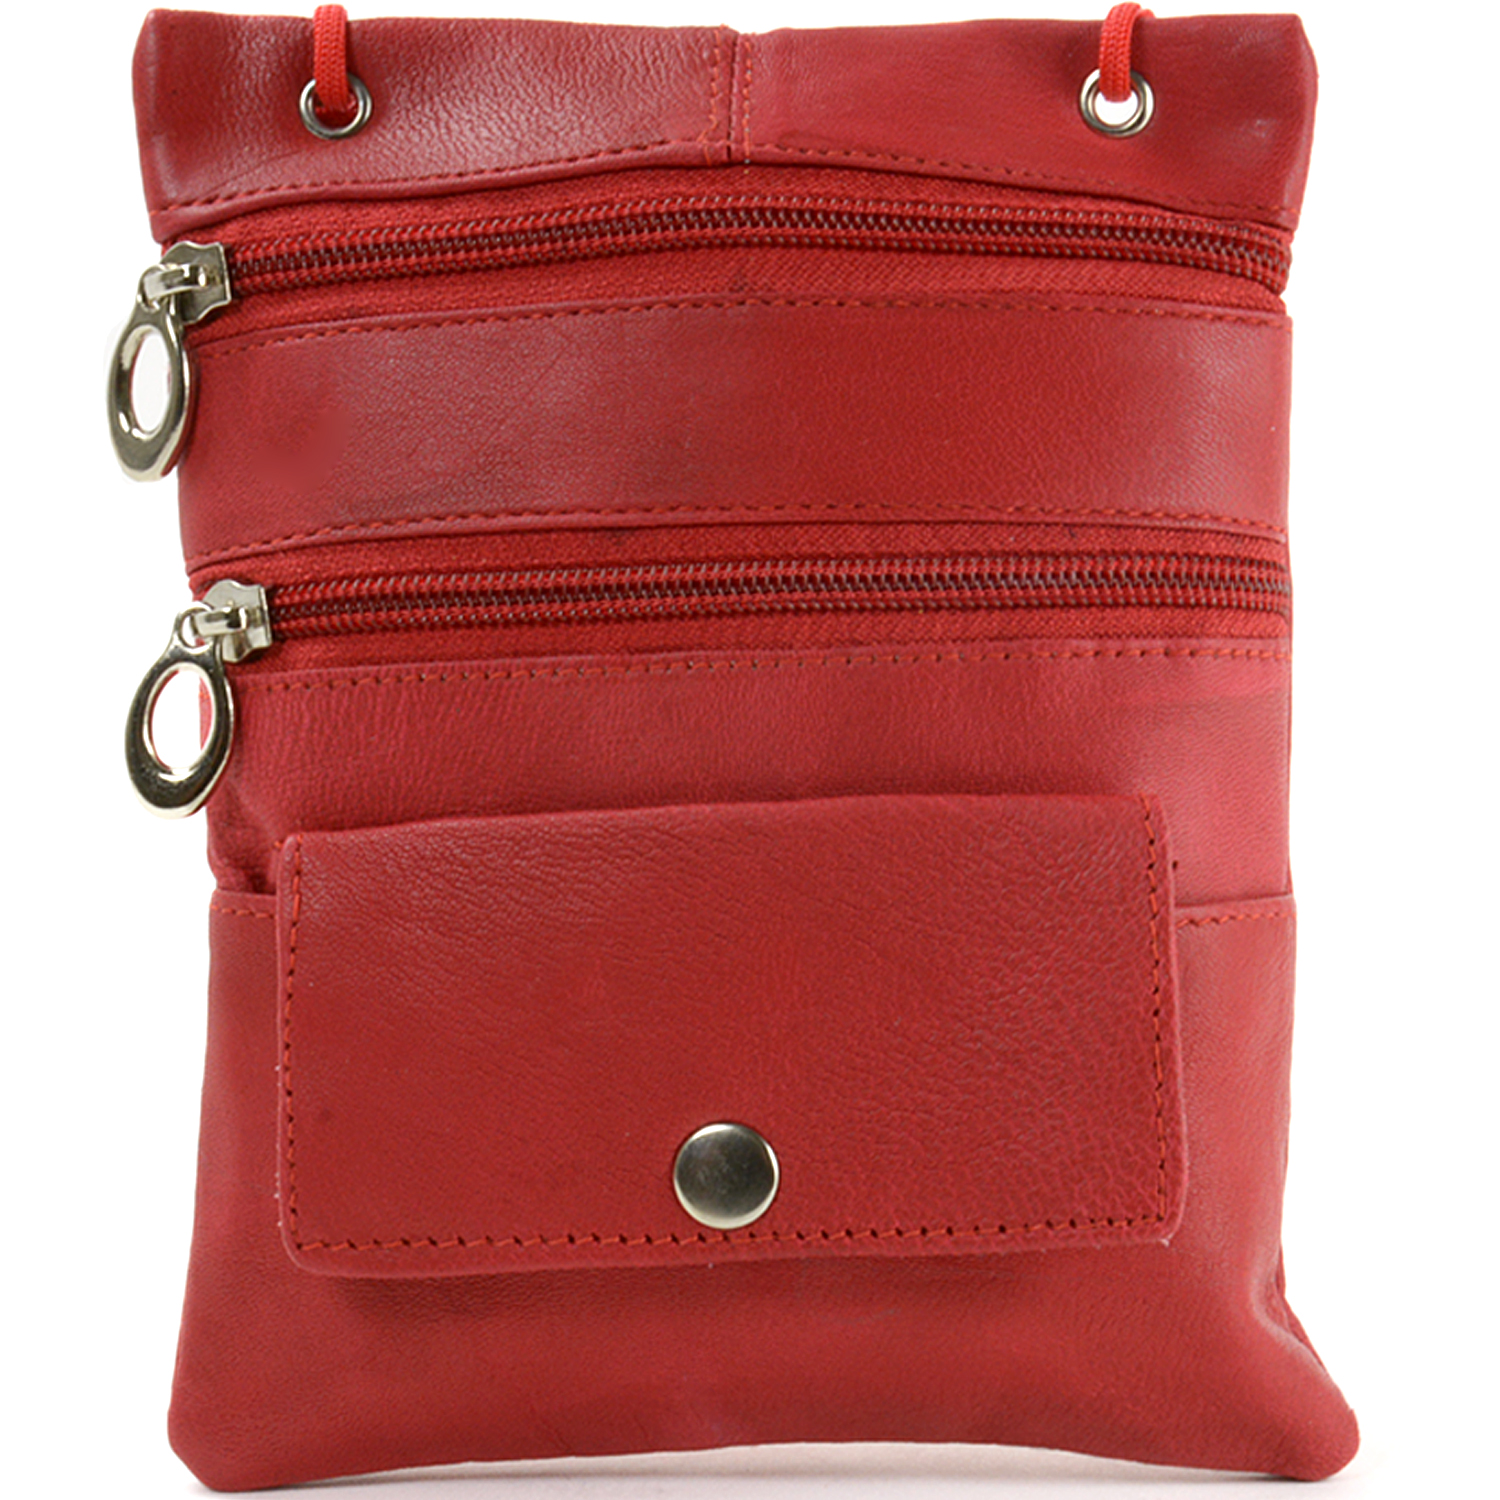 Womens Leather Organizer Purse Shoulder Bag Handbag Cross Body Bag ...